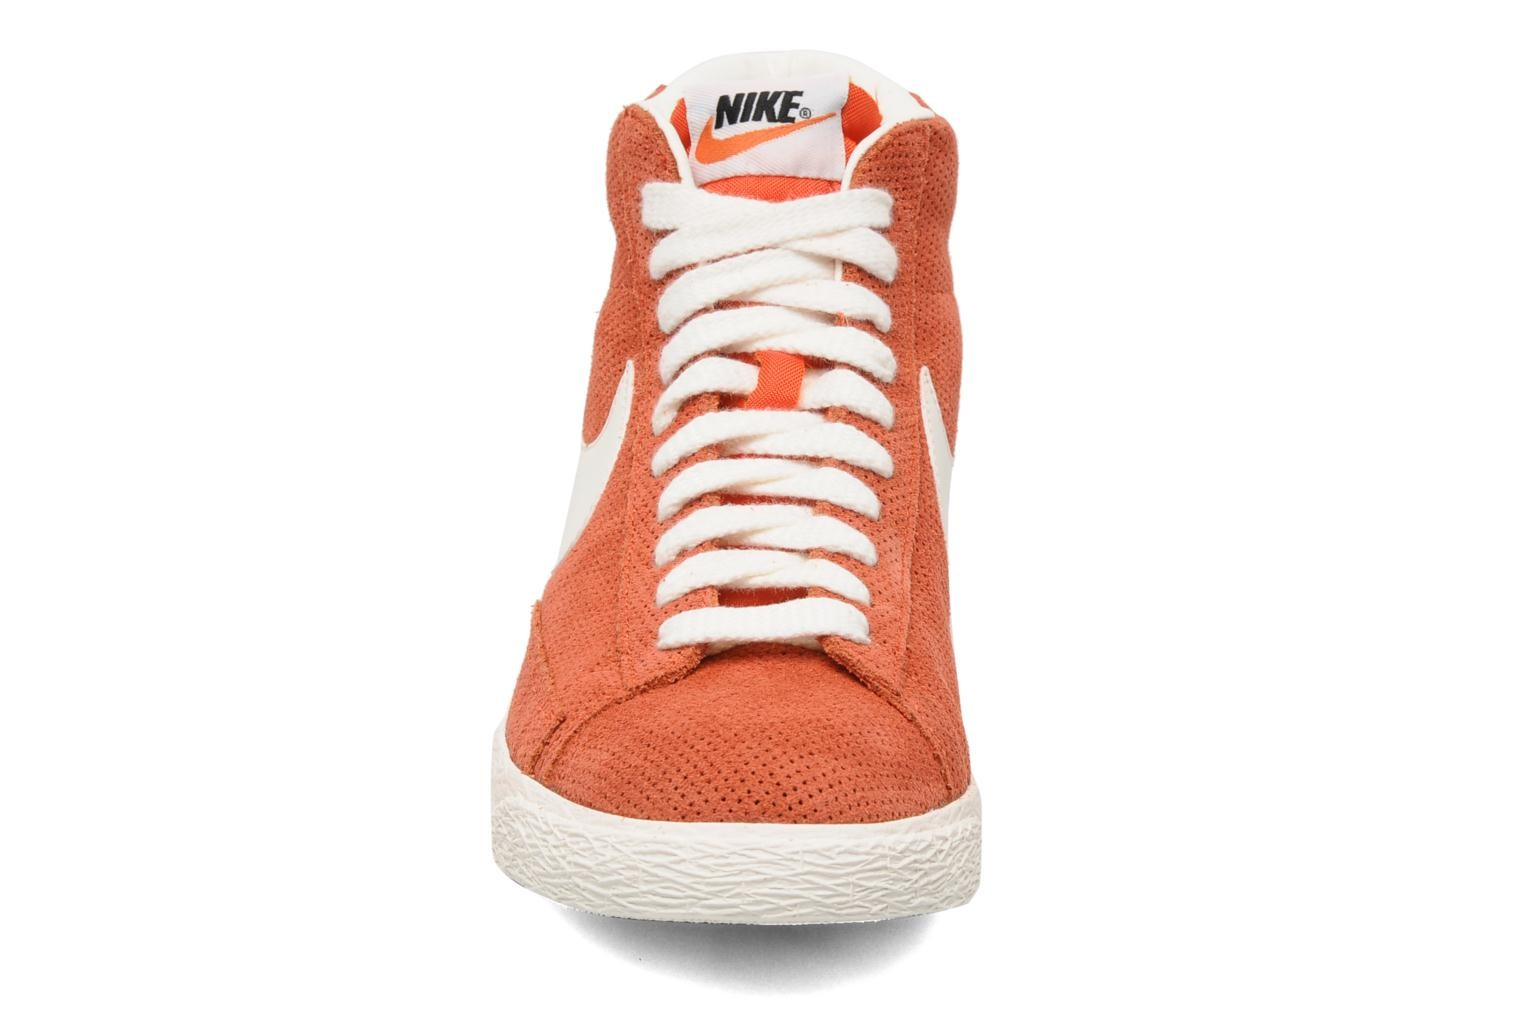 Nike Blazer Mid Prm Vintage Suede Gamma Orange Sail Mens High Top Sneakers